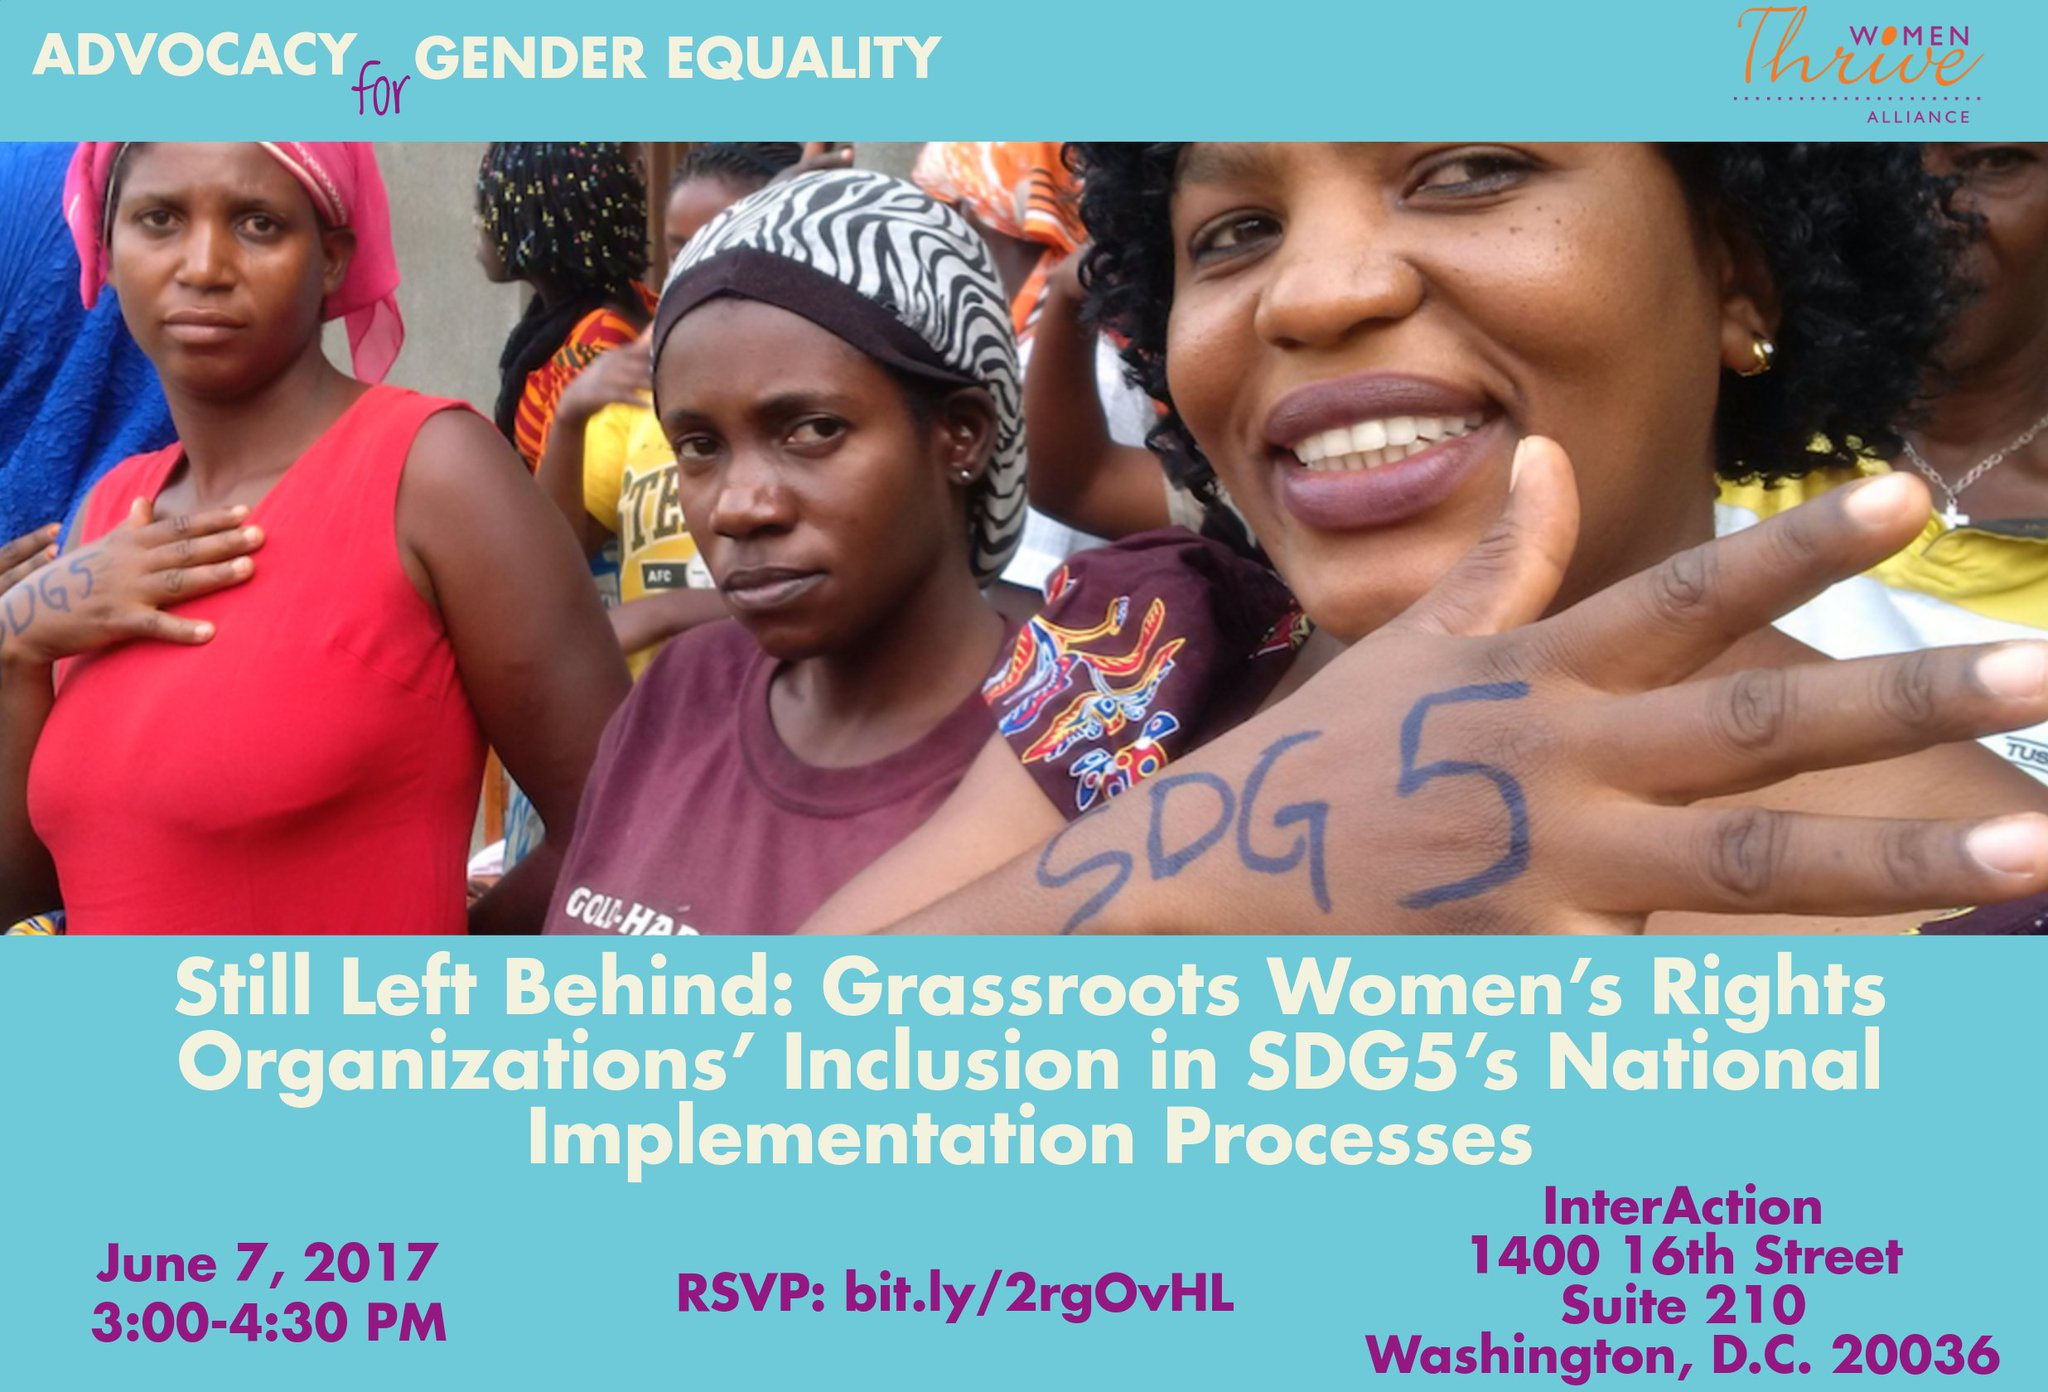 Join us and @WomenThrive on June 7 to discuss how grassroots organizations can take part in national-level policy: https://t.co/qP9QuNpxJr https://t.co/rr42hvMKI6